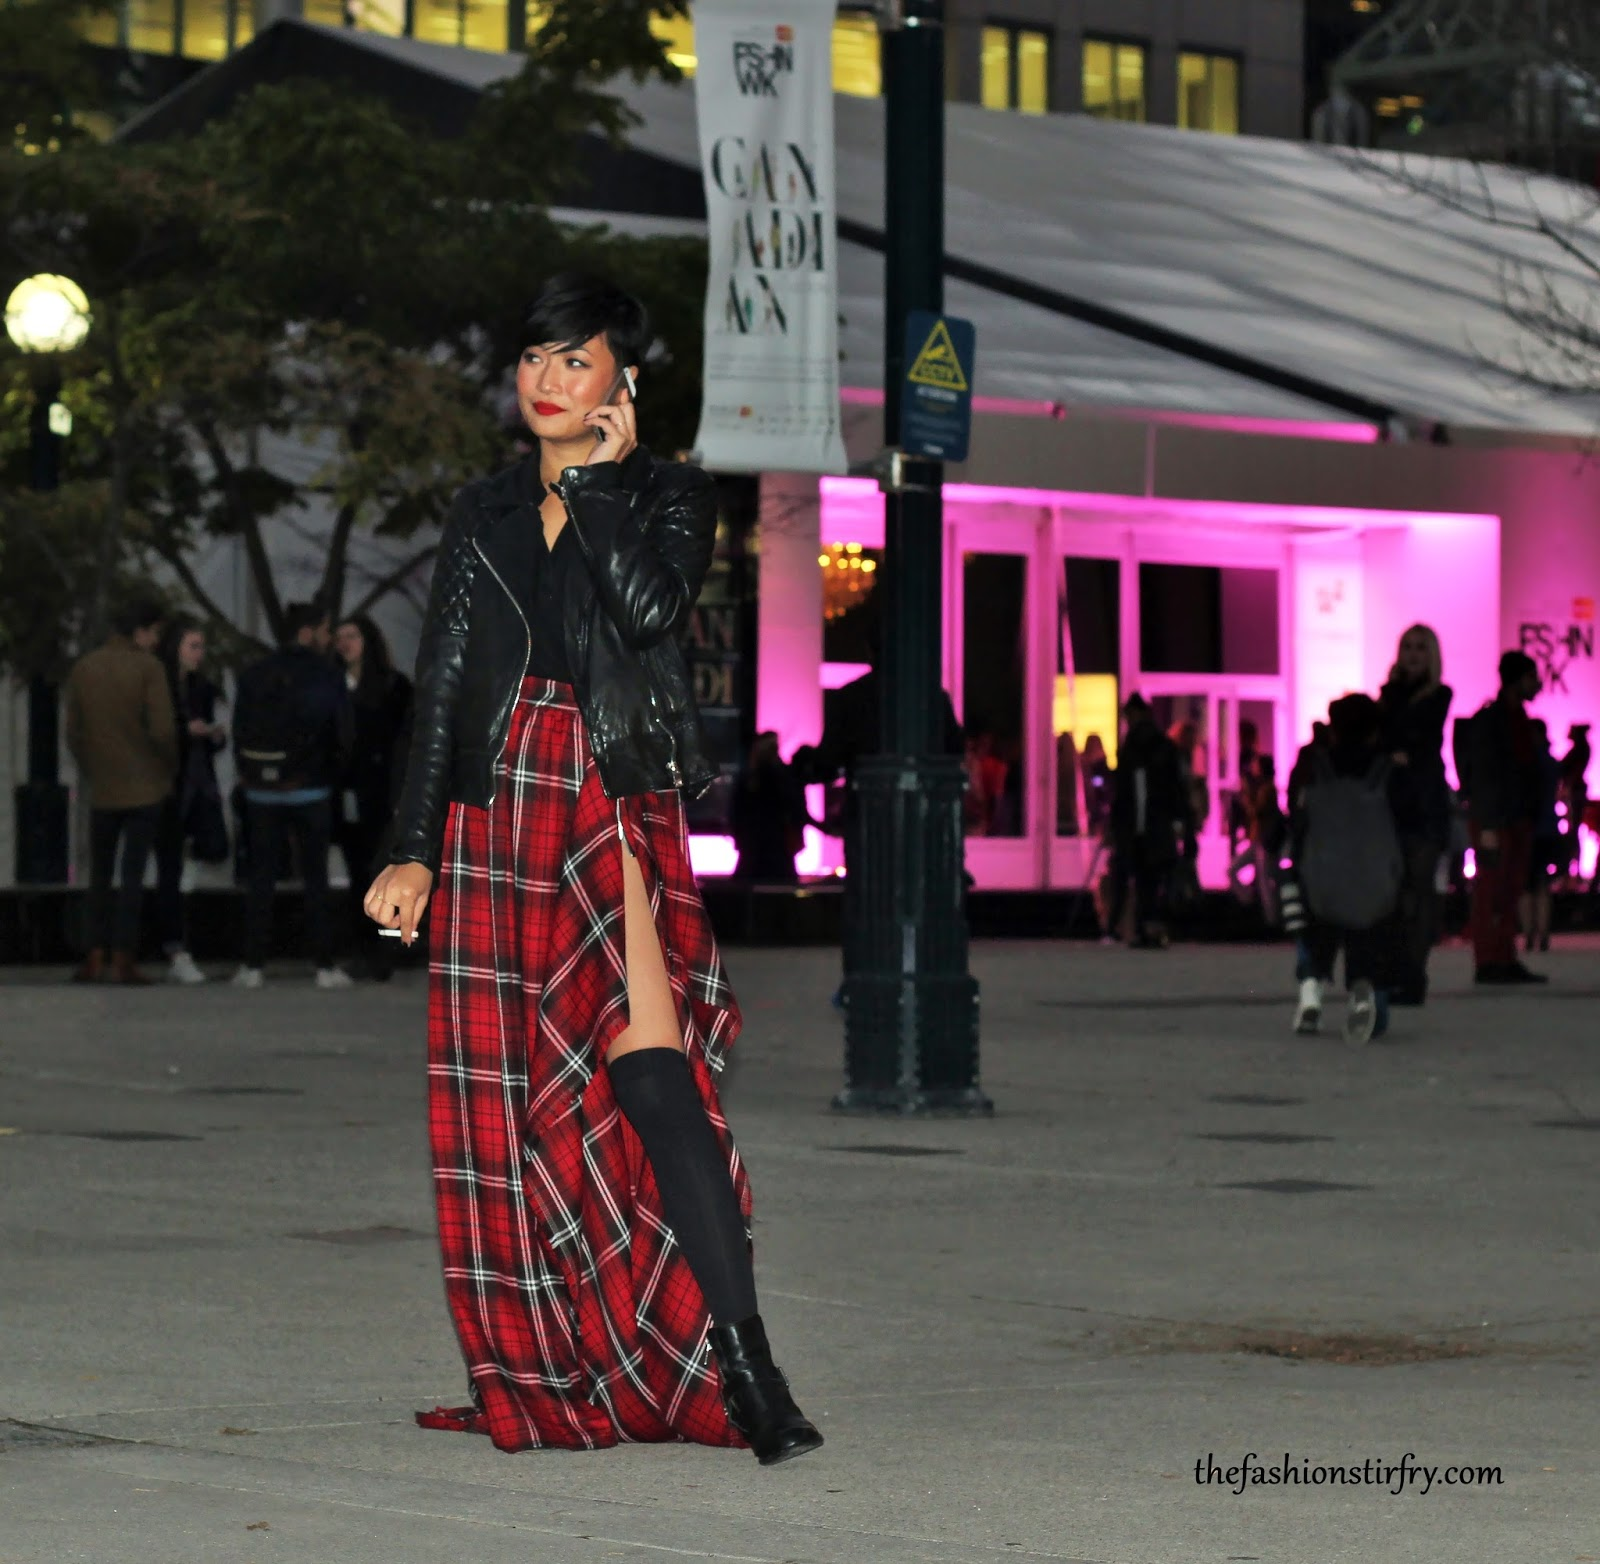 STREET STYLE TORONTO: THIRD NIGHT OF FASHION WEEK FROM OUTSIDE DAVID PECAUT SQUARE